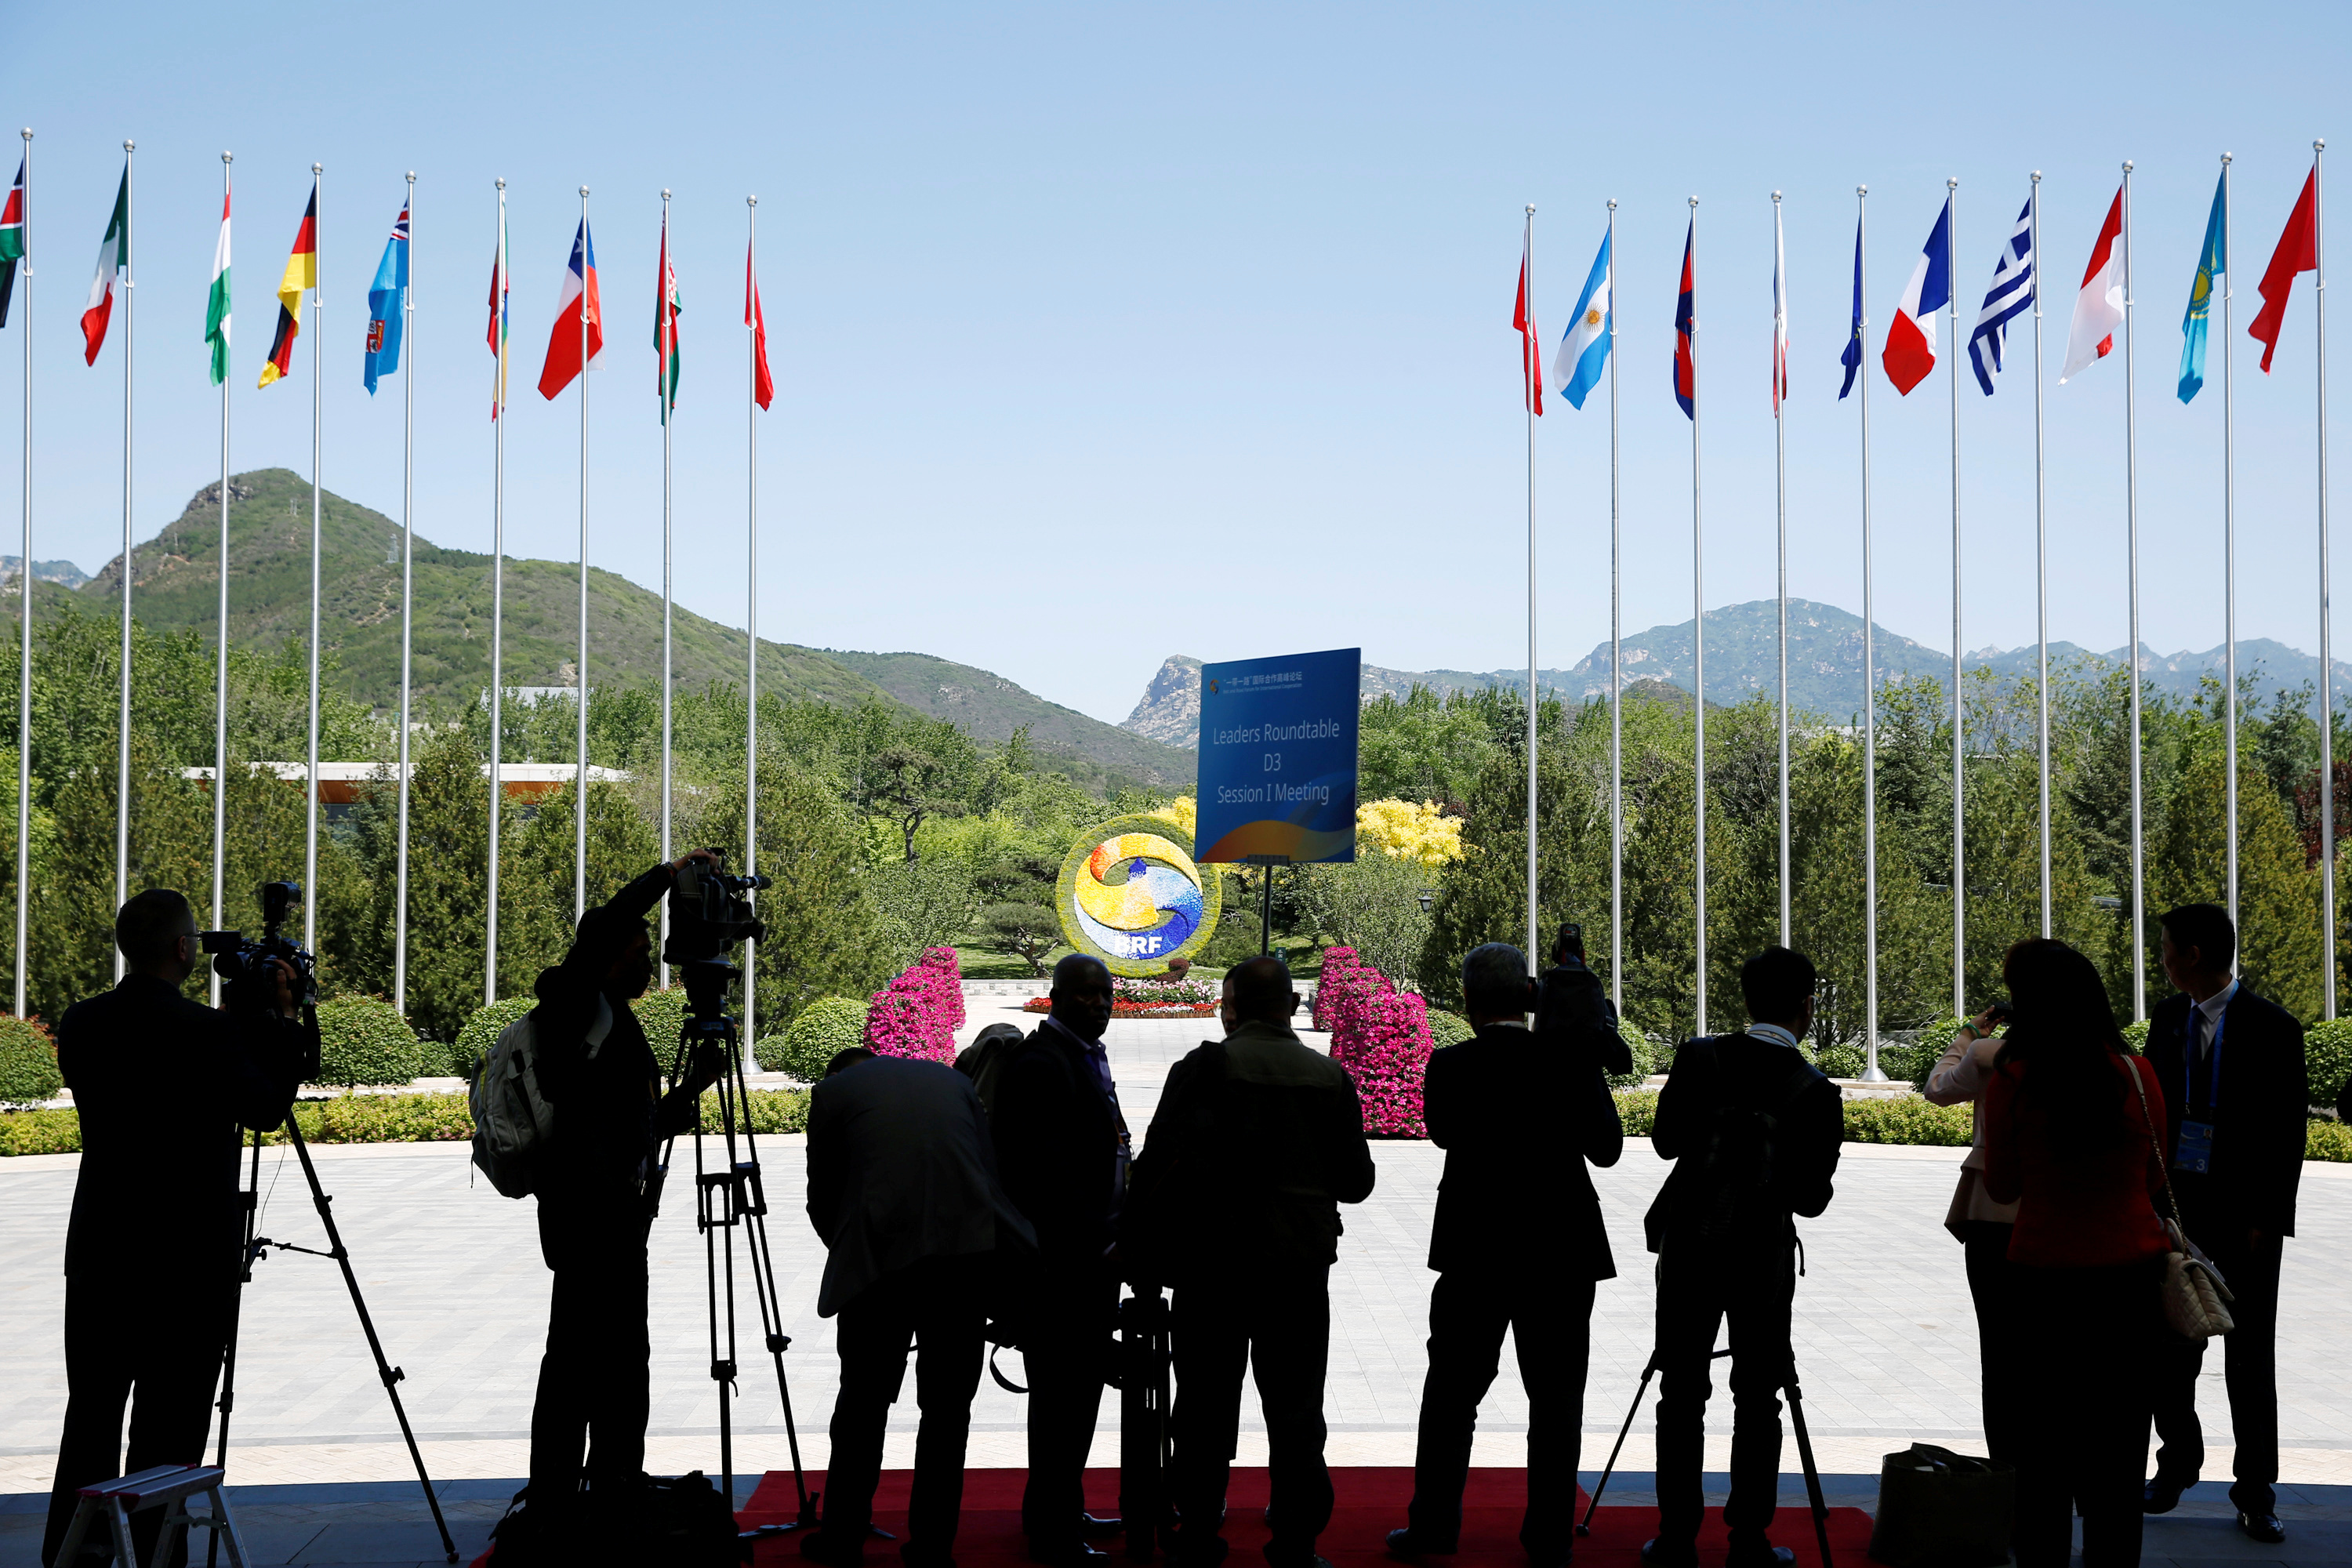 Journalist take pictures outside the venue of a summit at the Belt and Road Forum in Beijing, China, May 15, 2017.